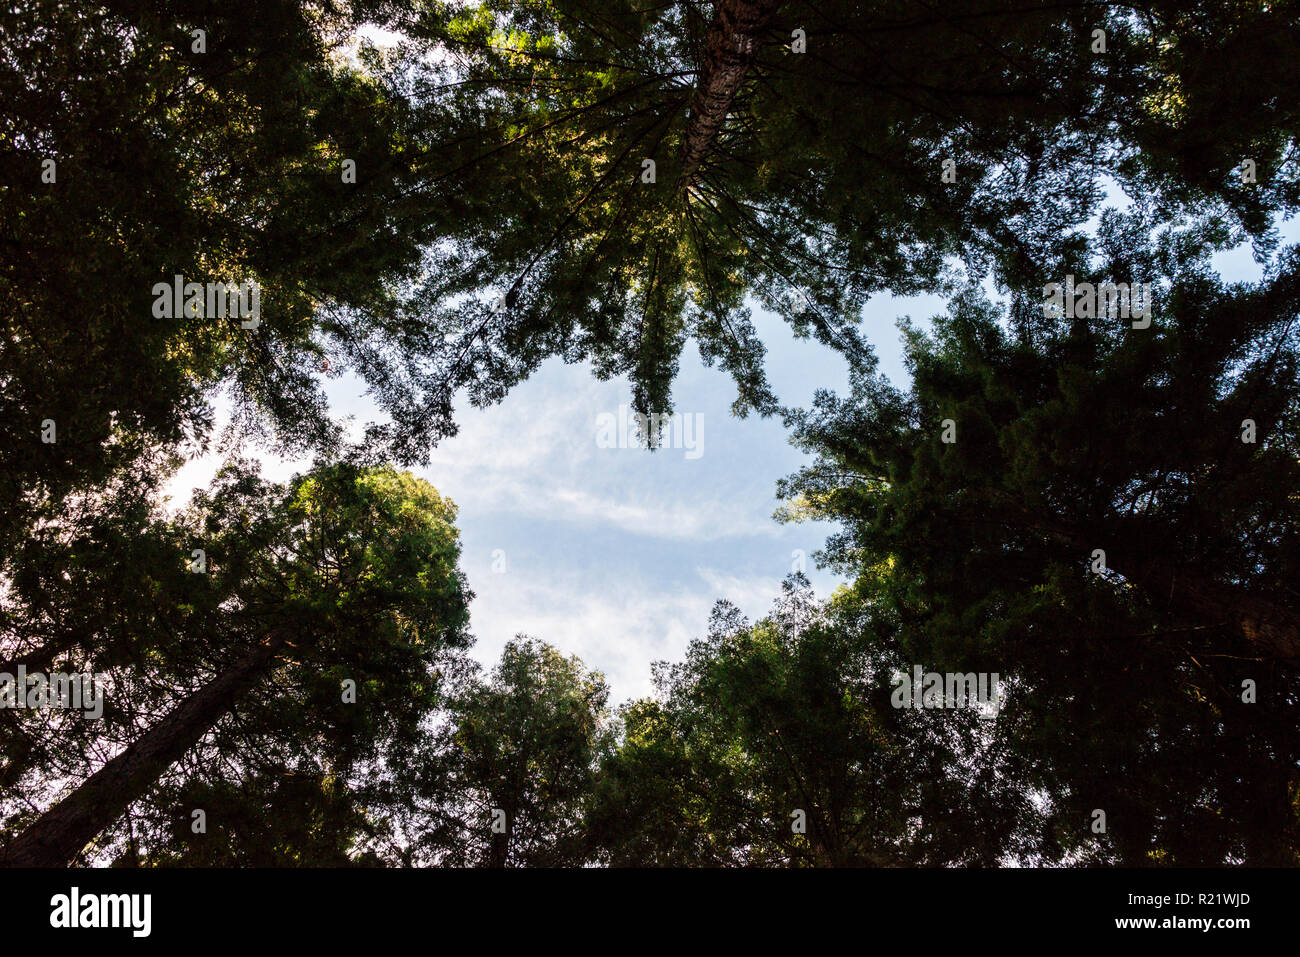 Looking up through coniferous trees - Stock Image